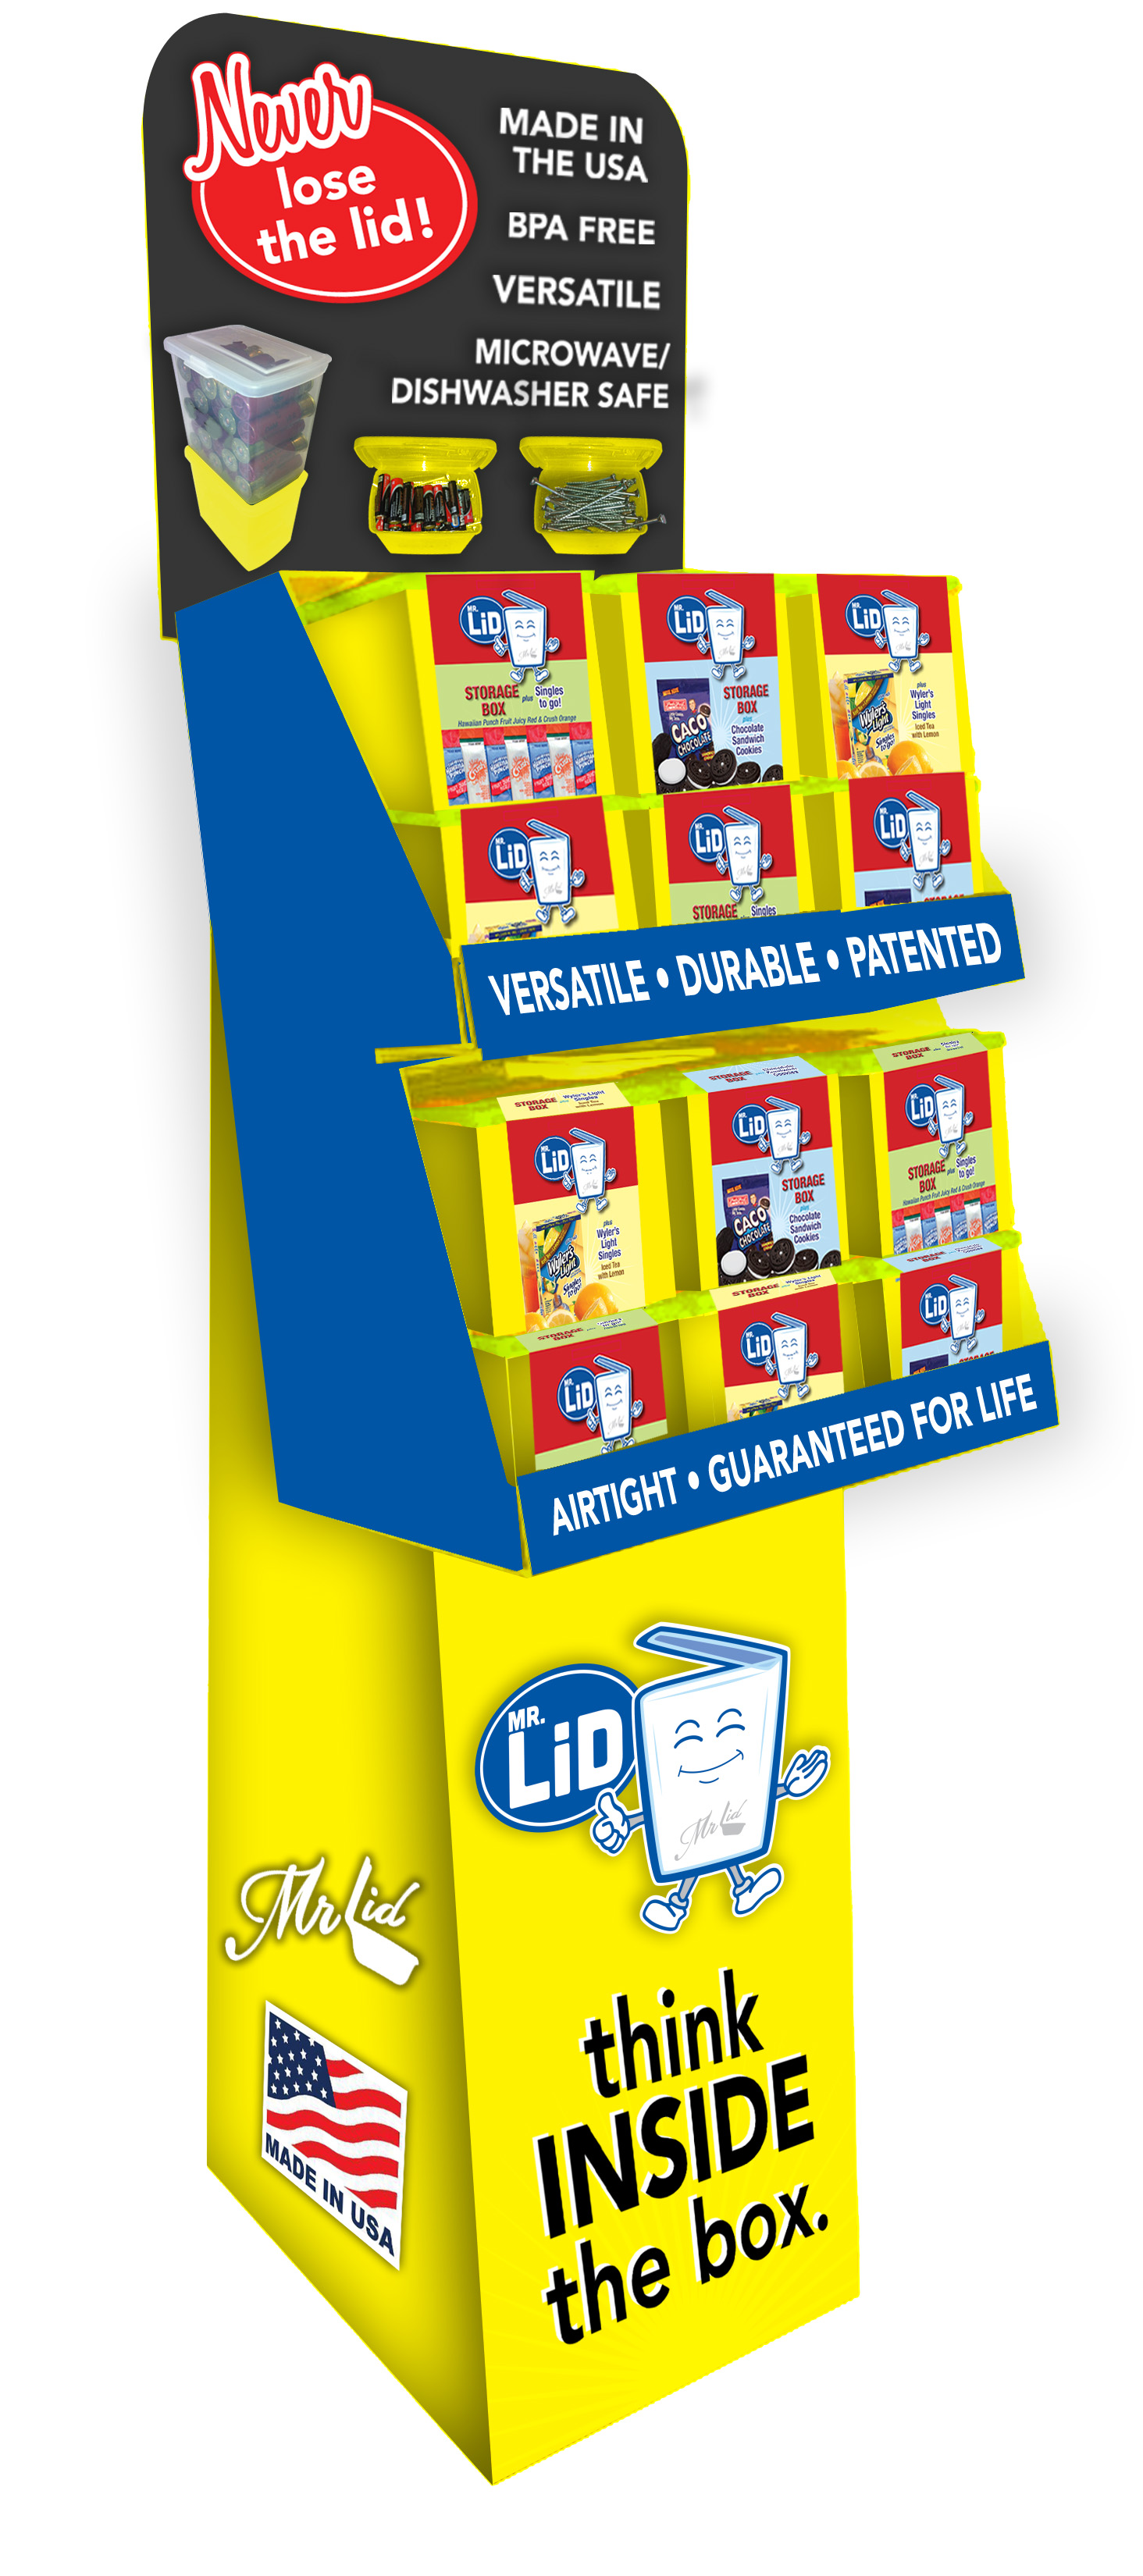 Display Stand_Lowes(1)